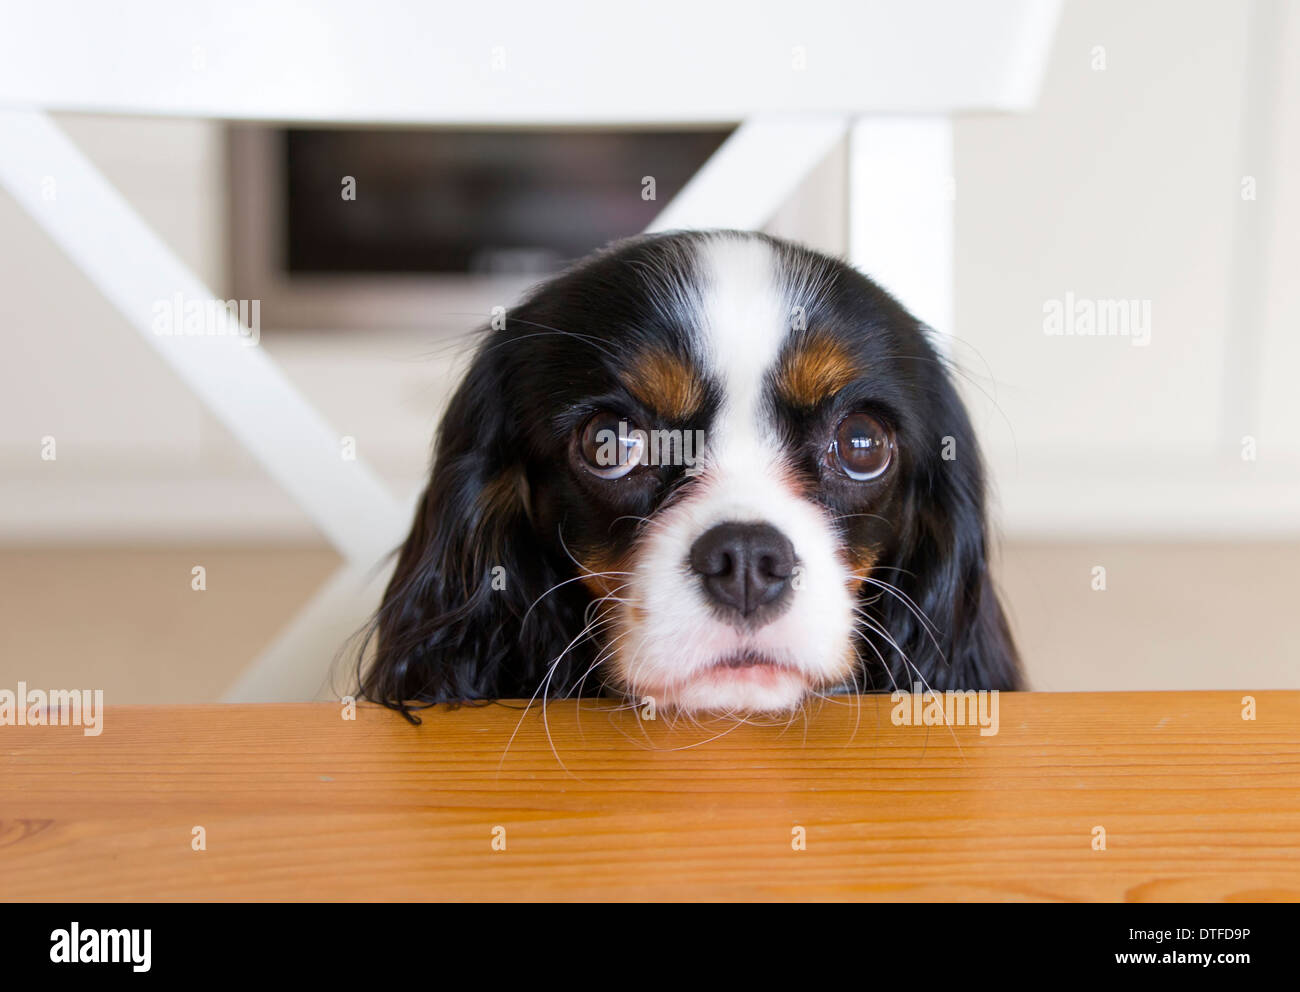 Dog Begging In The Kitchen Getting Food